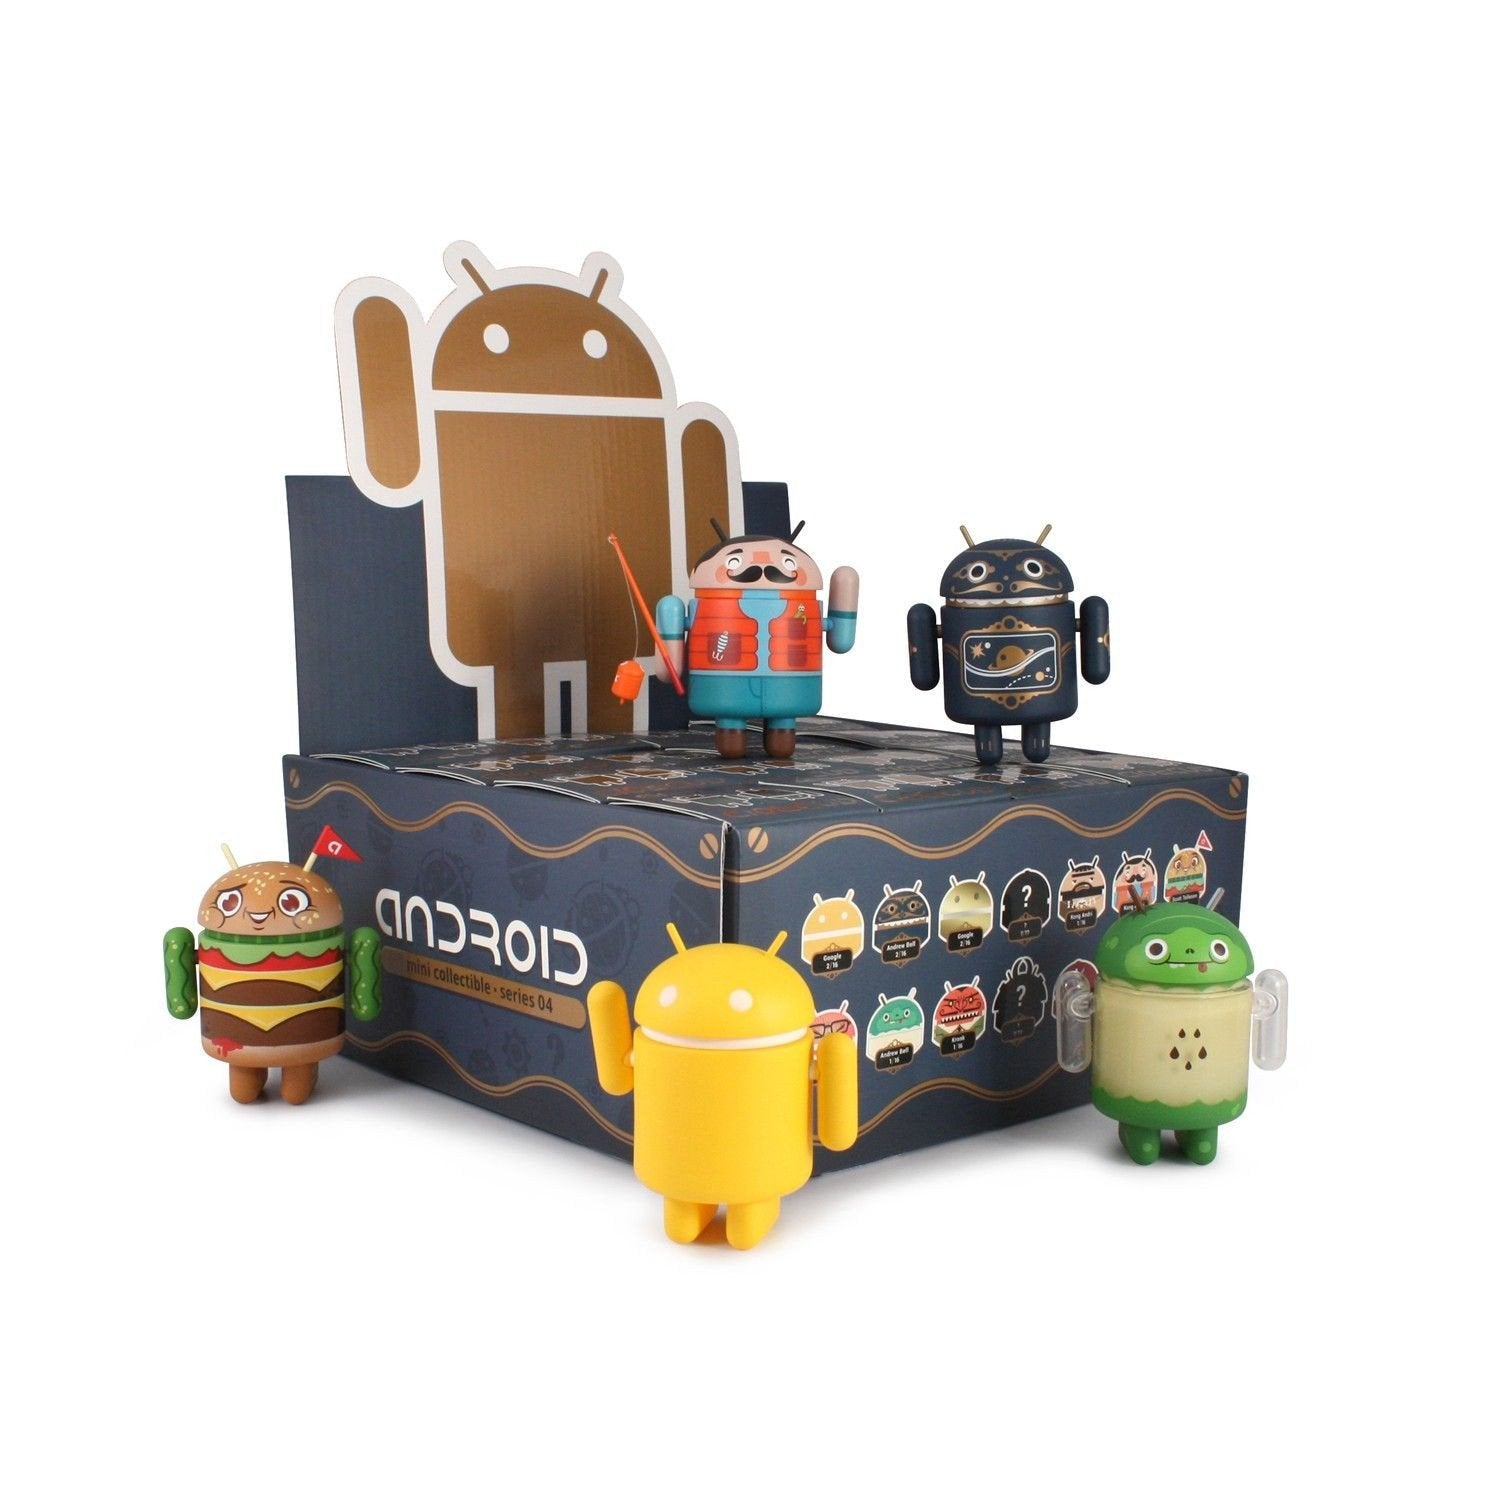 Android Mini Collectible Series 4 (Case of 16) - Fugitive Toys